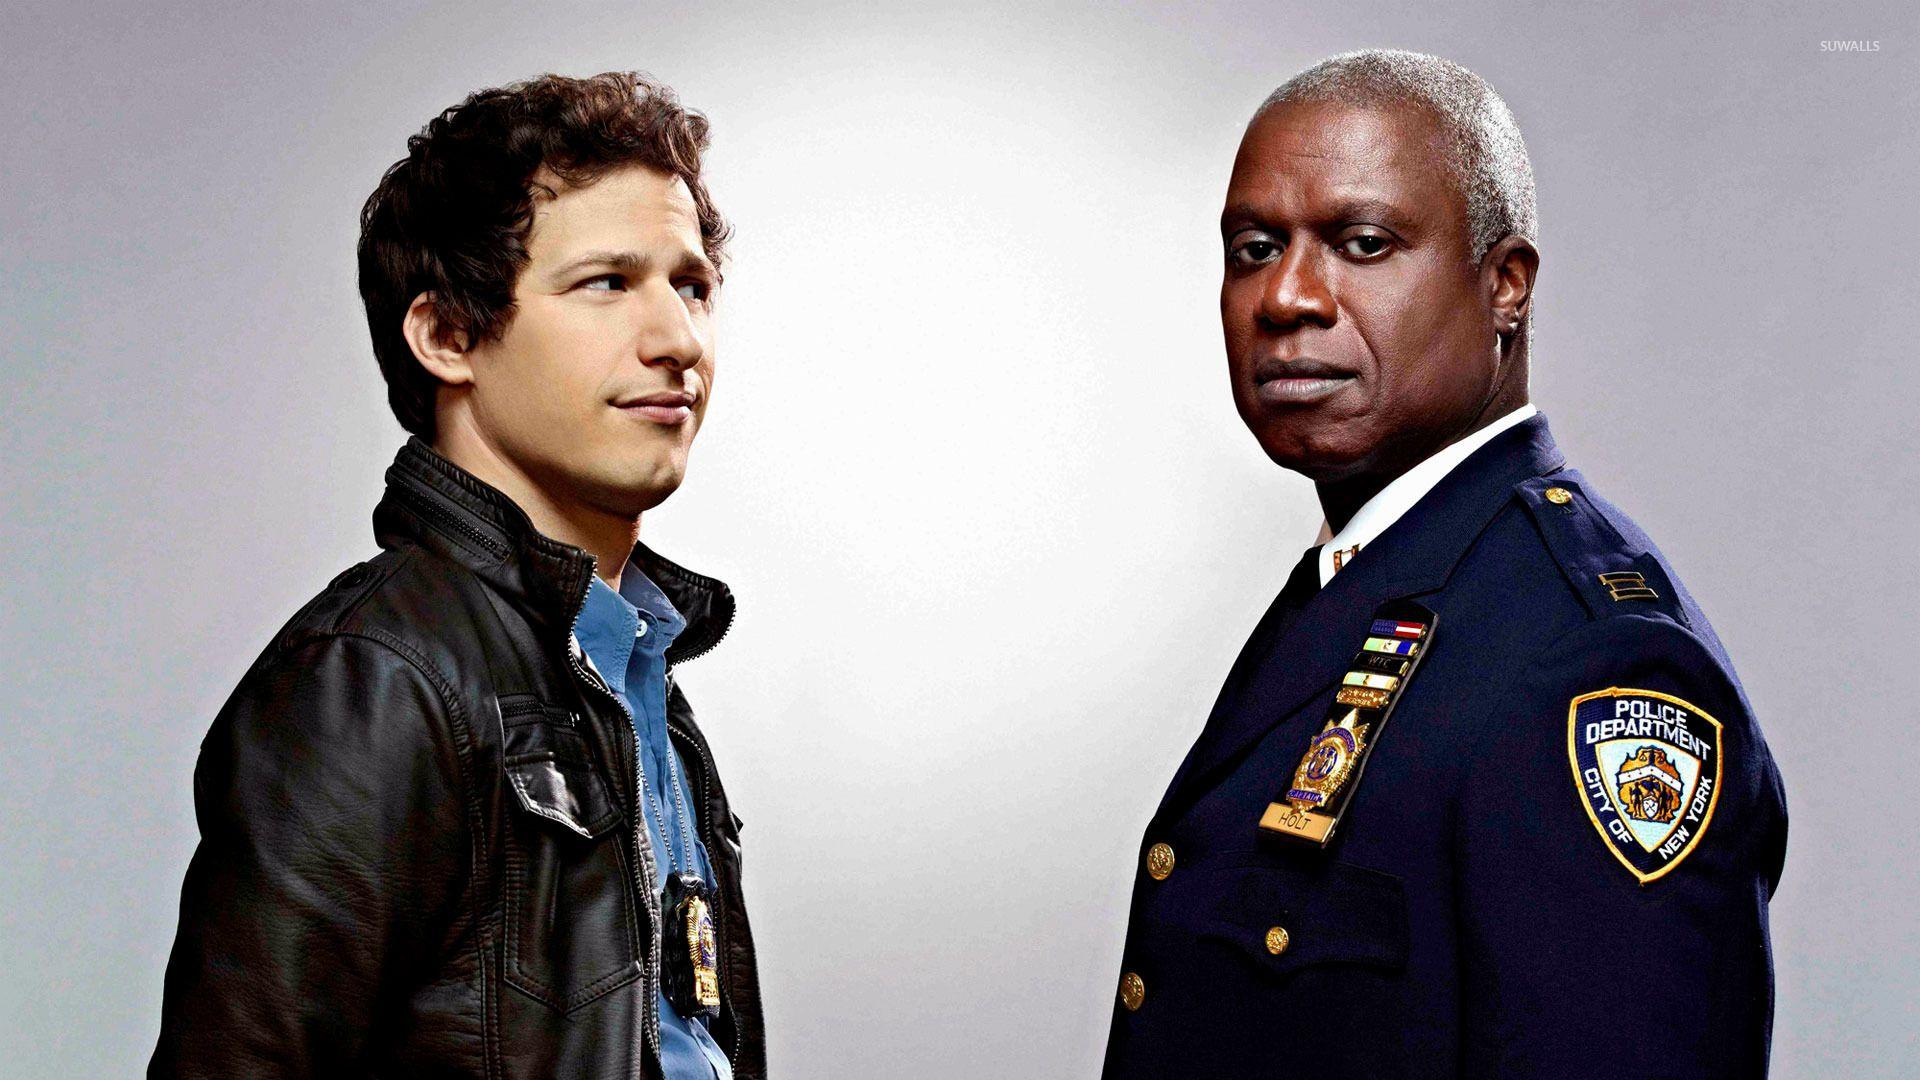 Capt. Holt and Jake Peralta